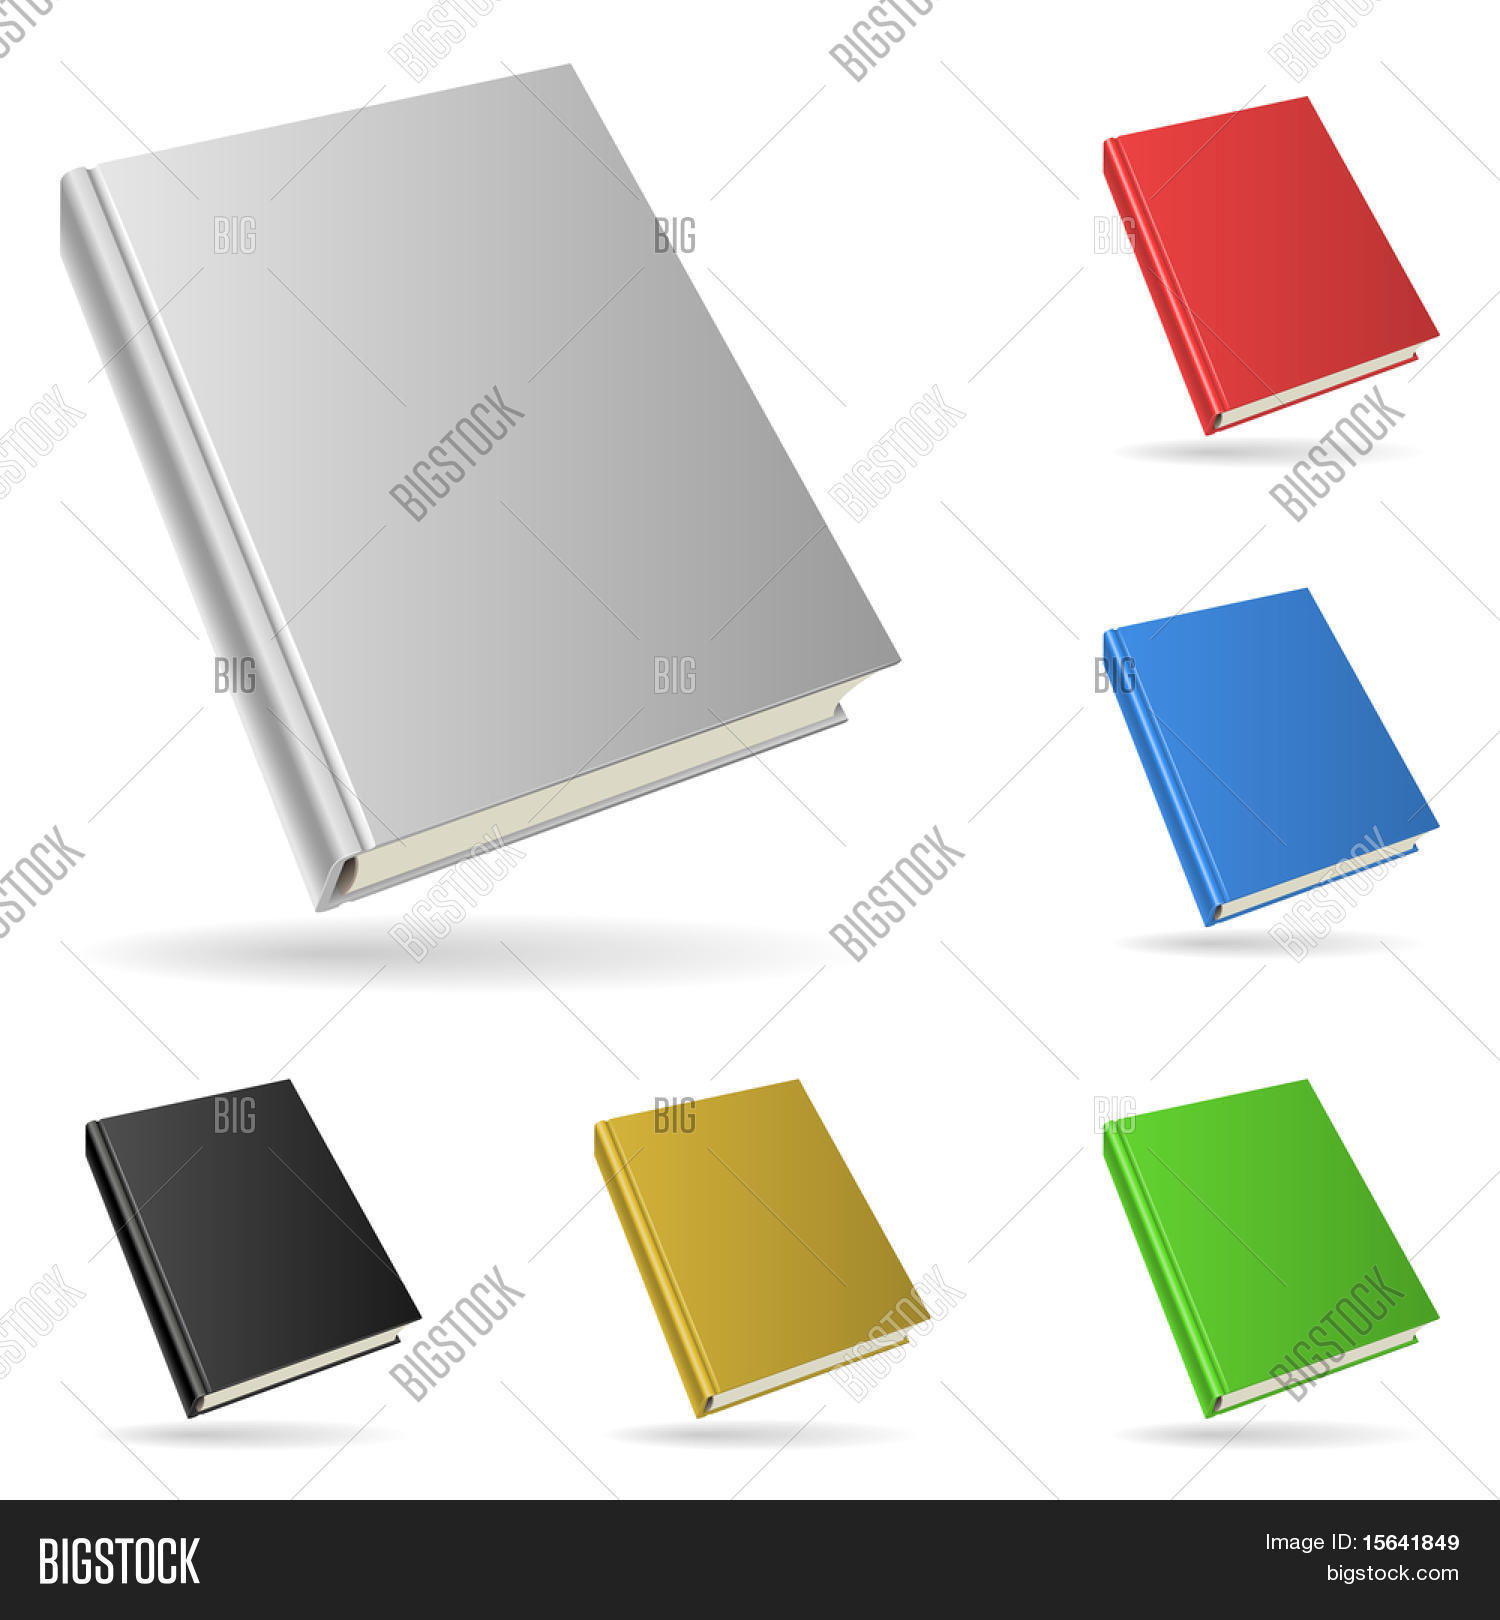 Hardcover book isolated on white background with color variants.